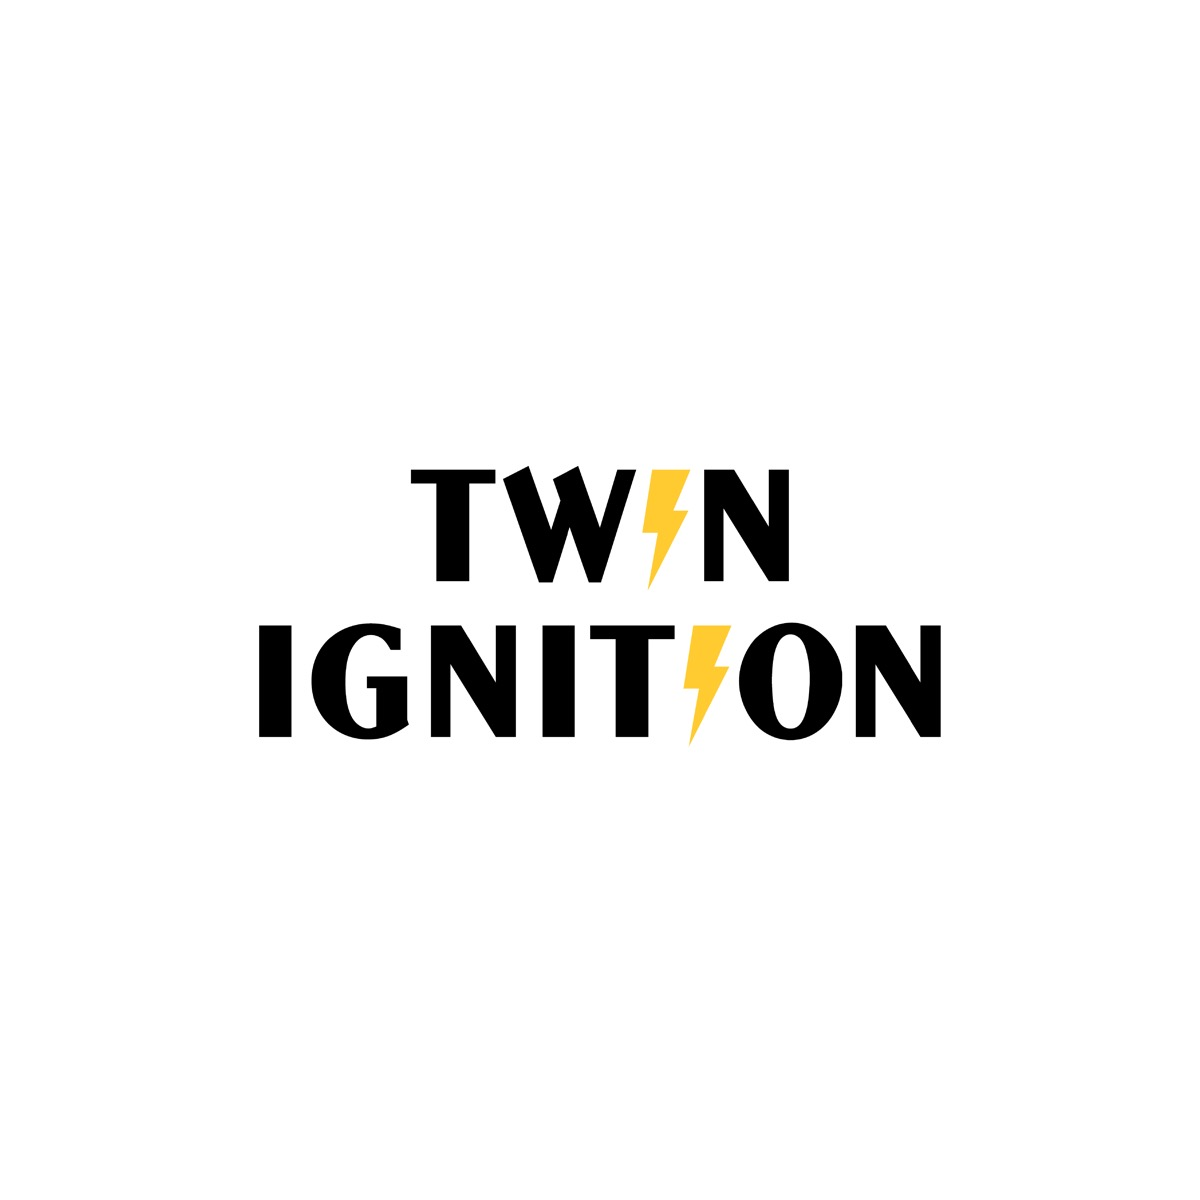 Twin Ignition